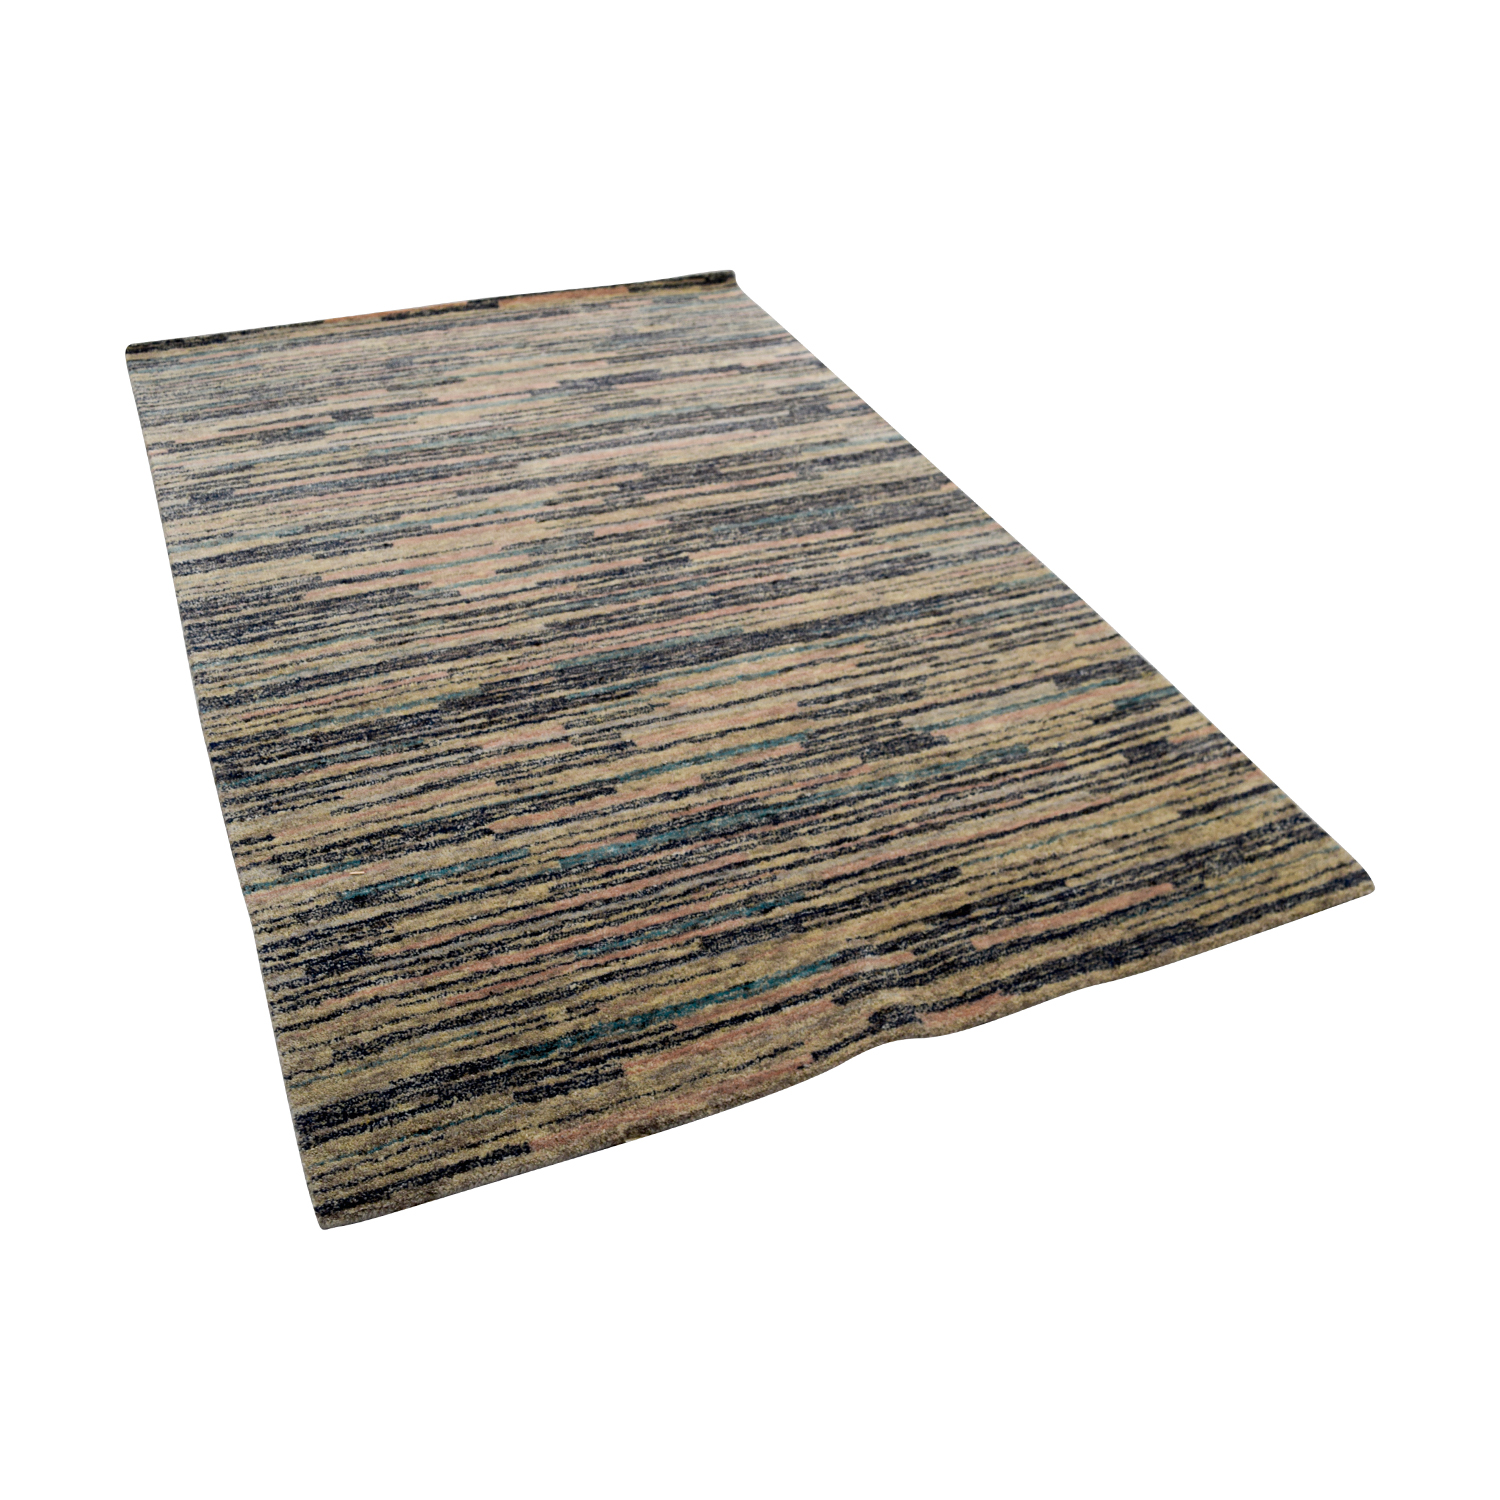 Obeetee Obeetee Multicolor Strips Rug for sale